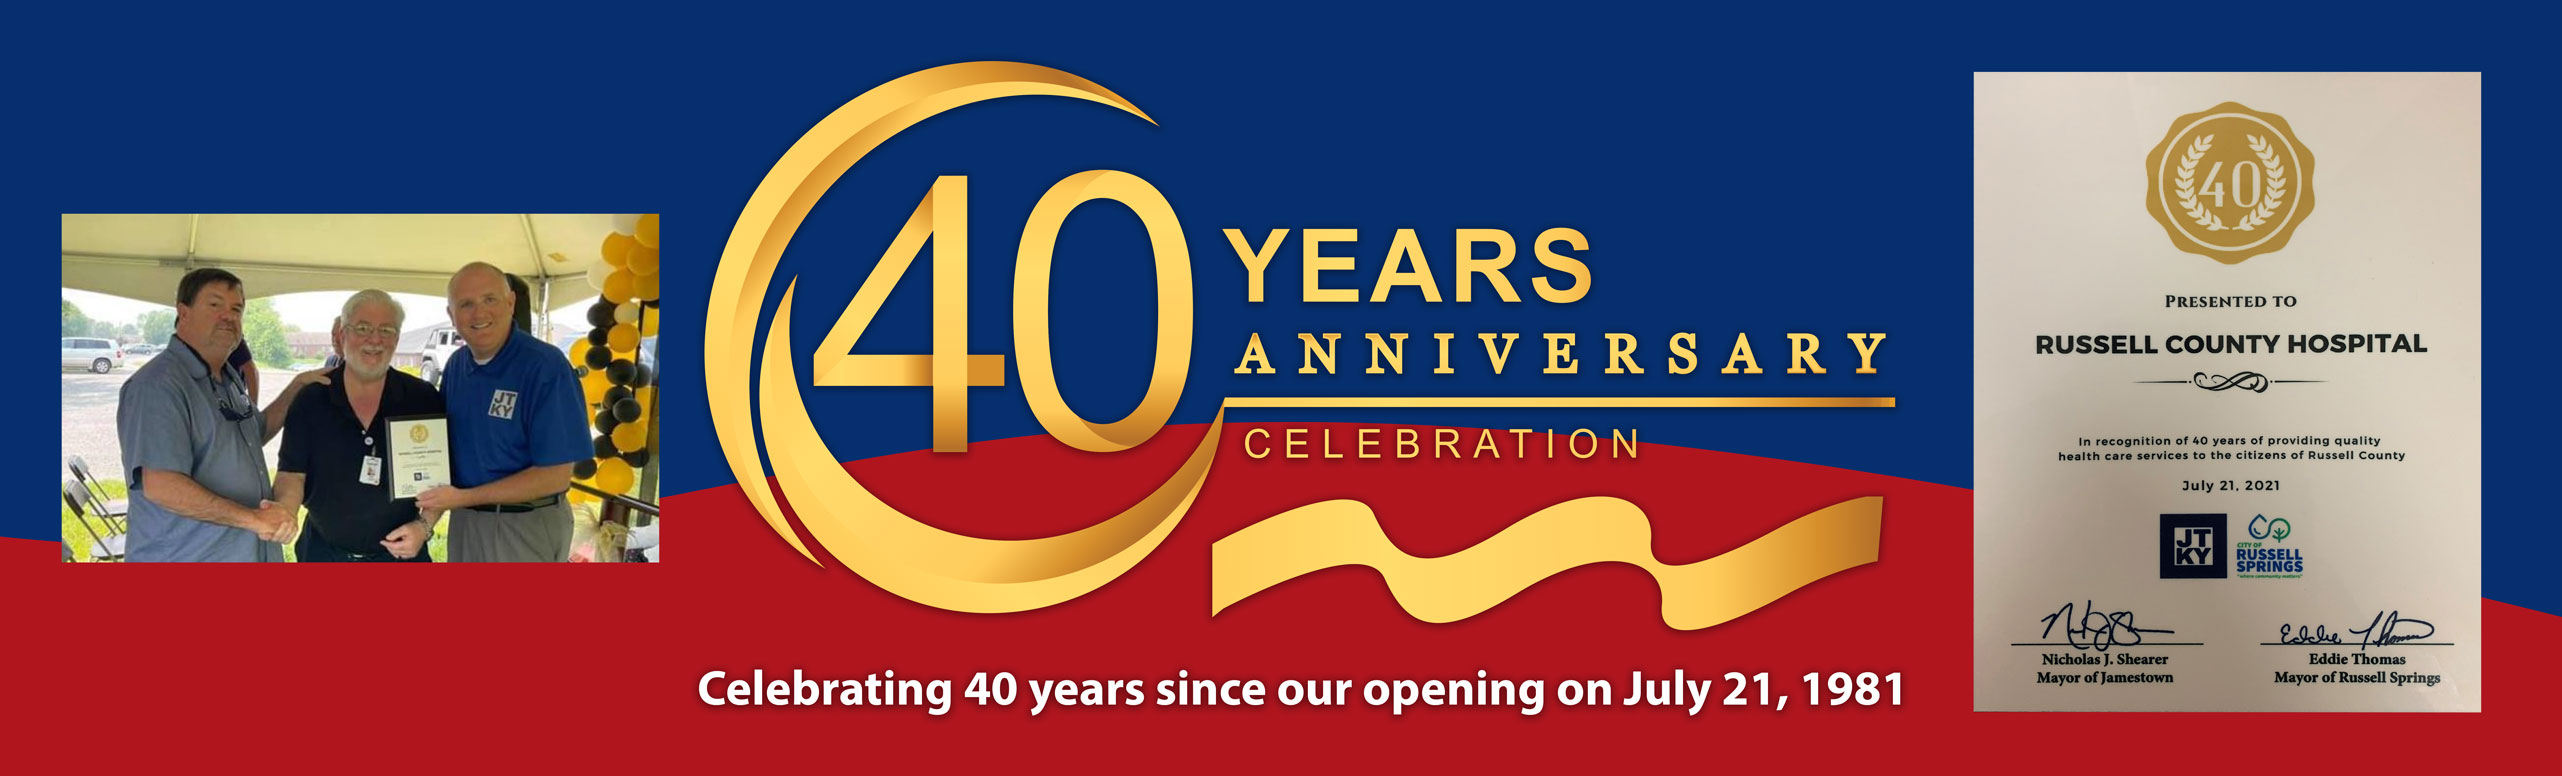 40 Years Anniversary   Celebrating 40 years since our opening on July 21, 1981